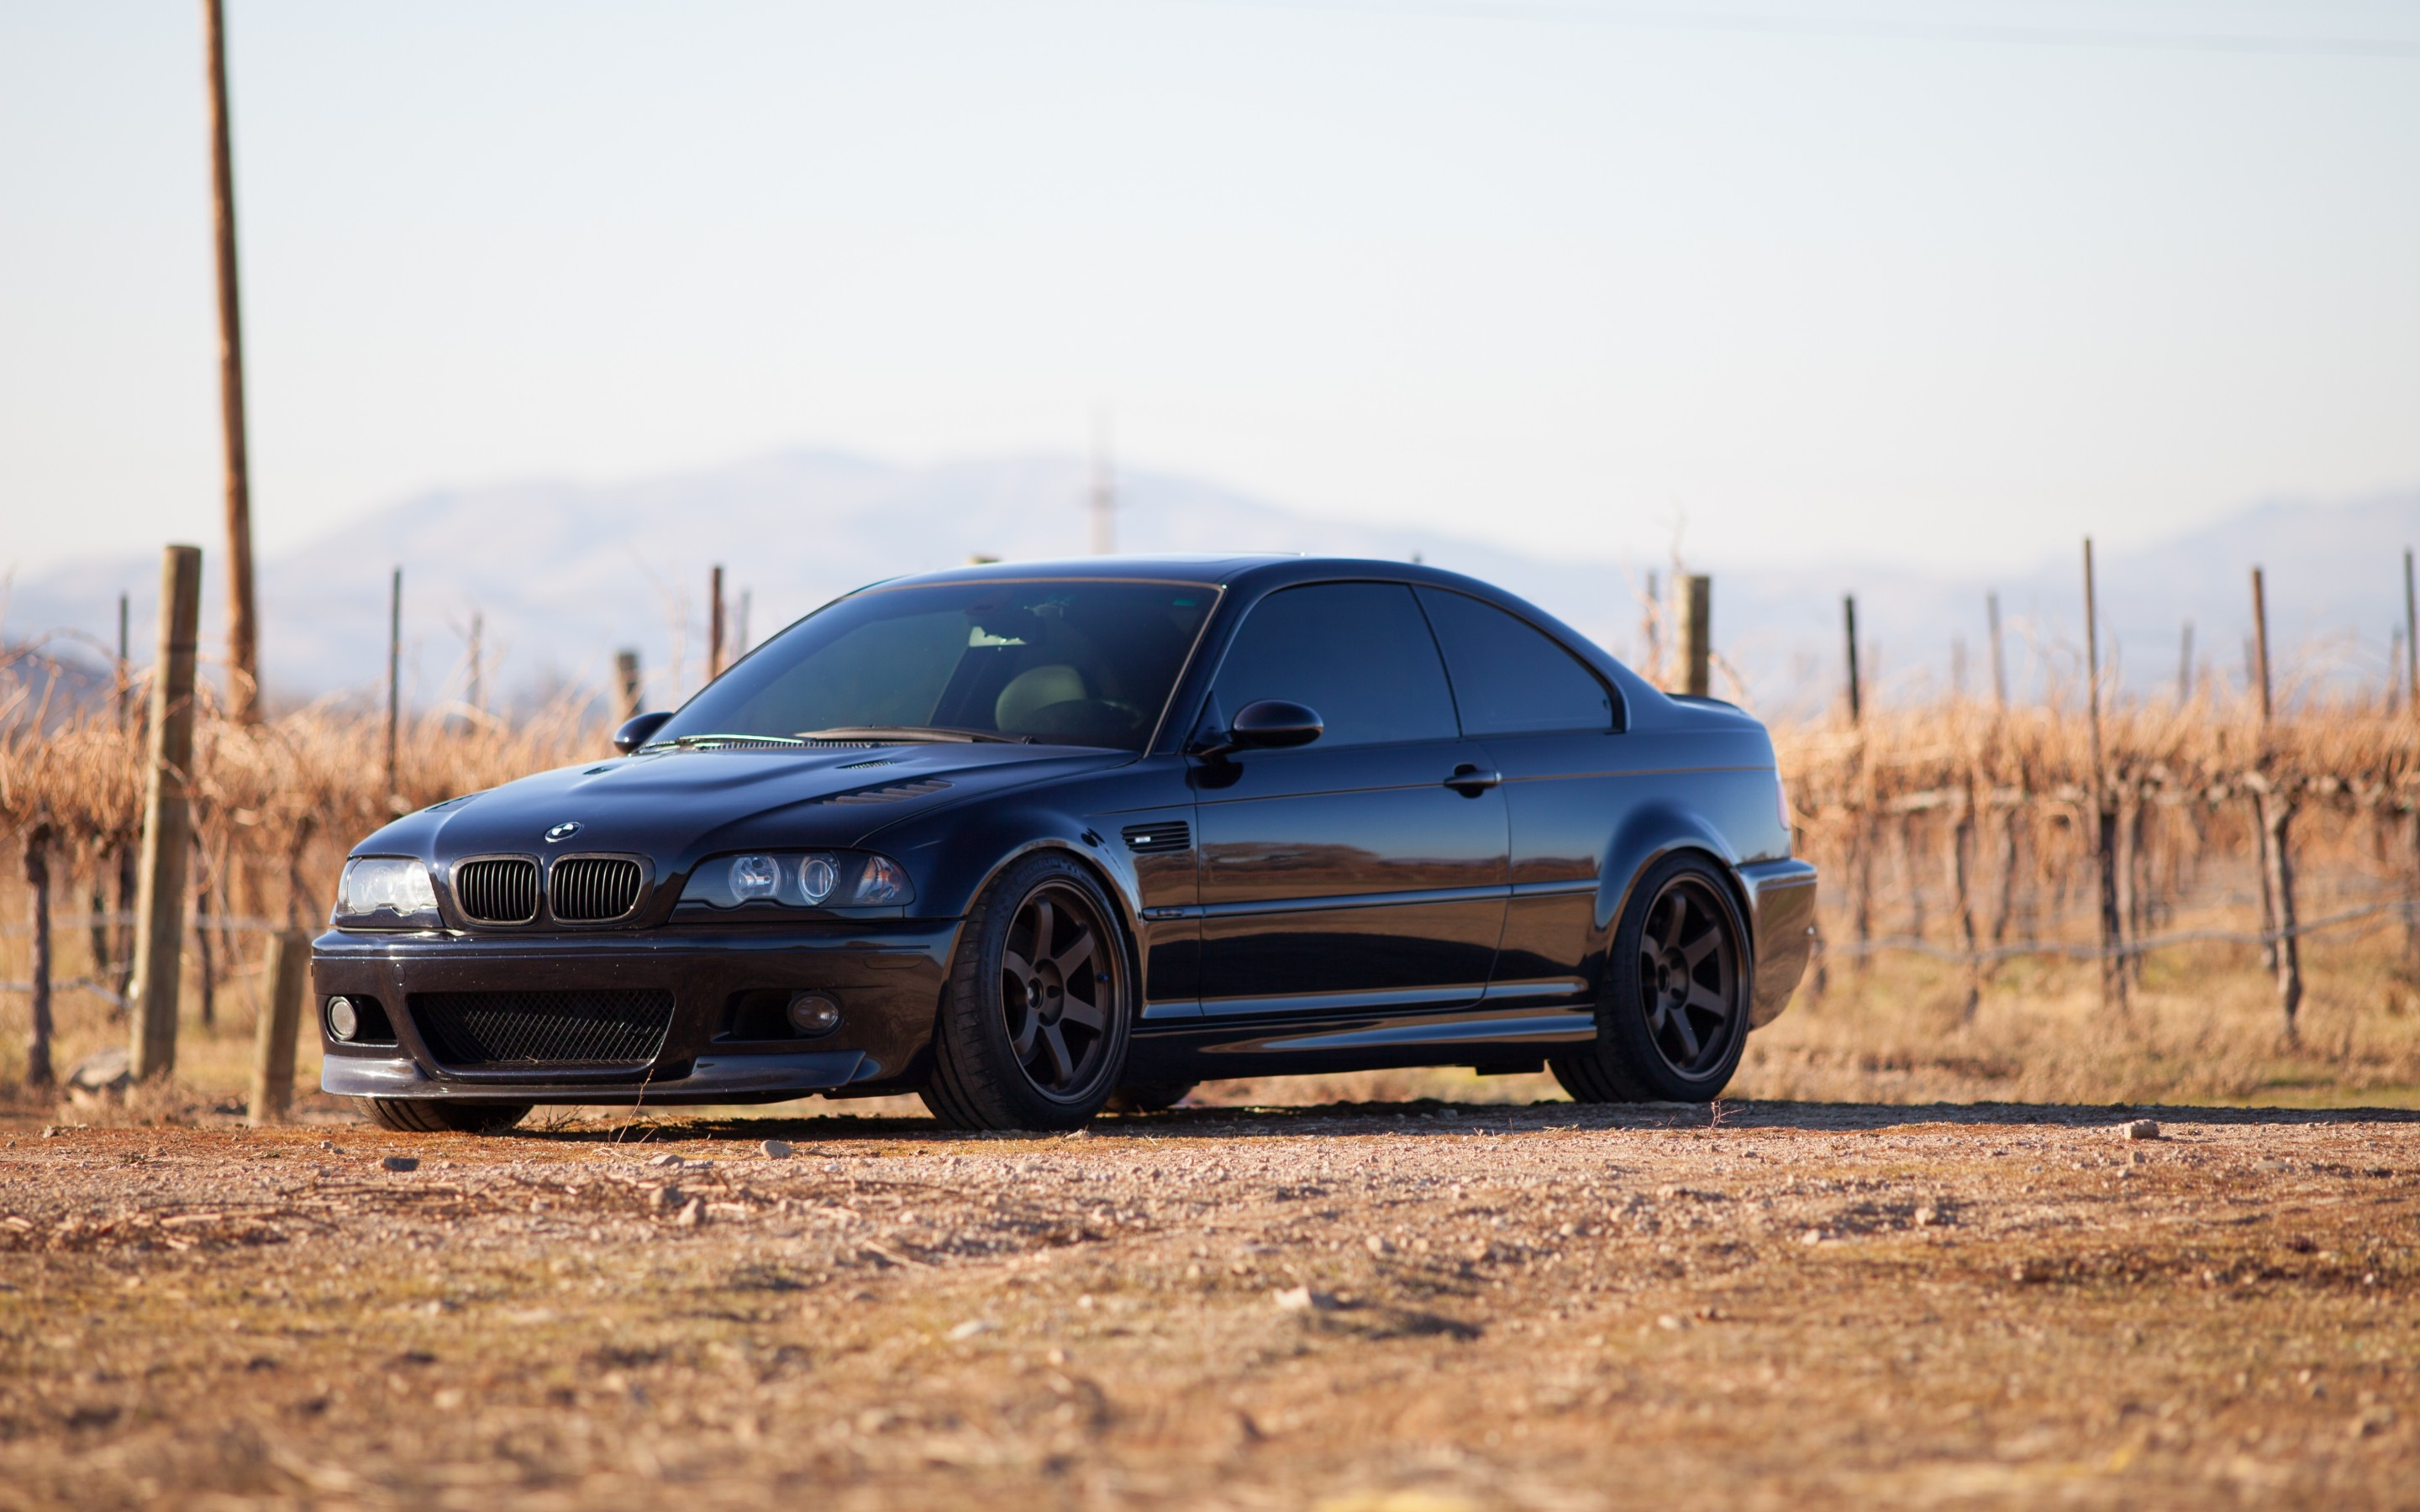 58376 free wallpaper 1125x2436 for phone, download images Bmw, Cars, Side View, E46, M3 1125x2436 for mobile